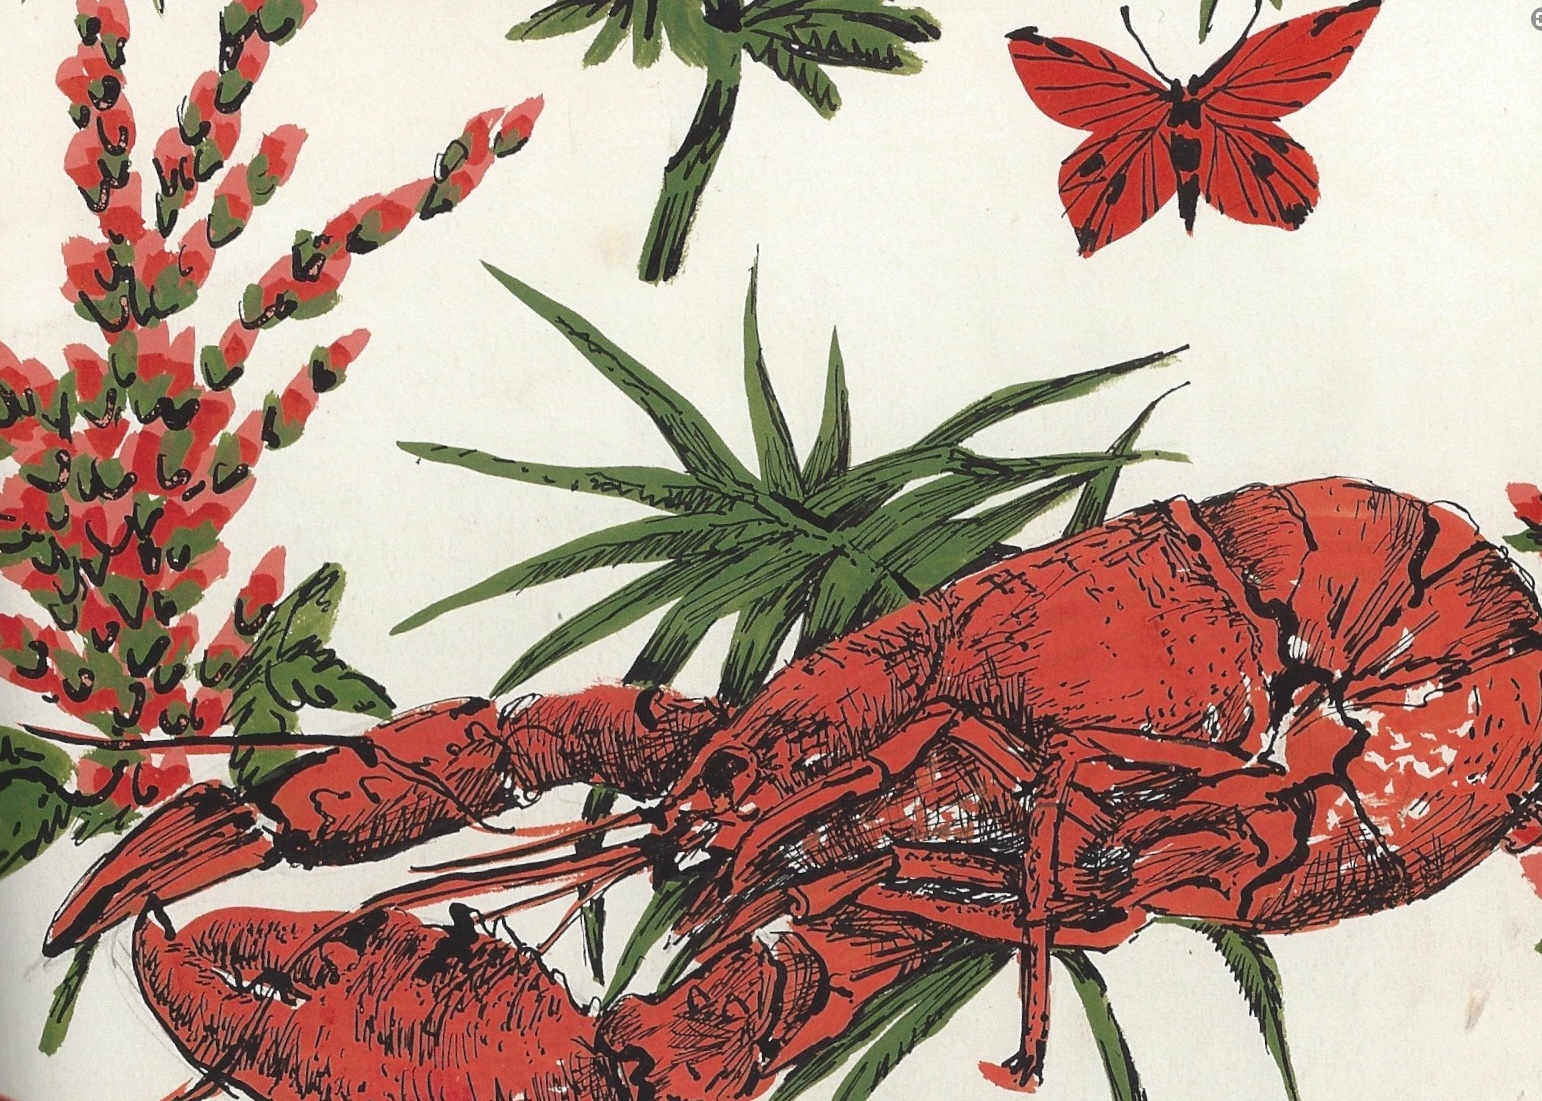 In 1953 John Tullis asked Pat Albeck to produce a fabric with a large scale lobster for a beach skirt. She felt it did not work on it's own, so added flowers and butterflies.